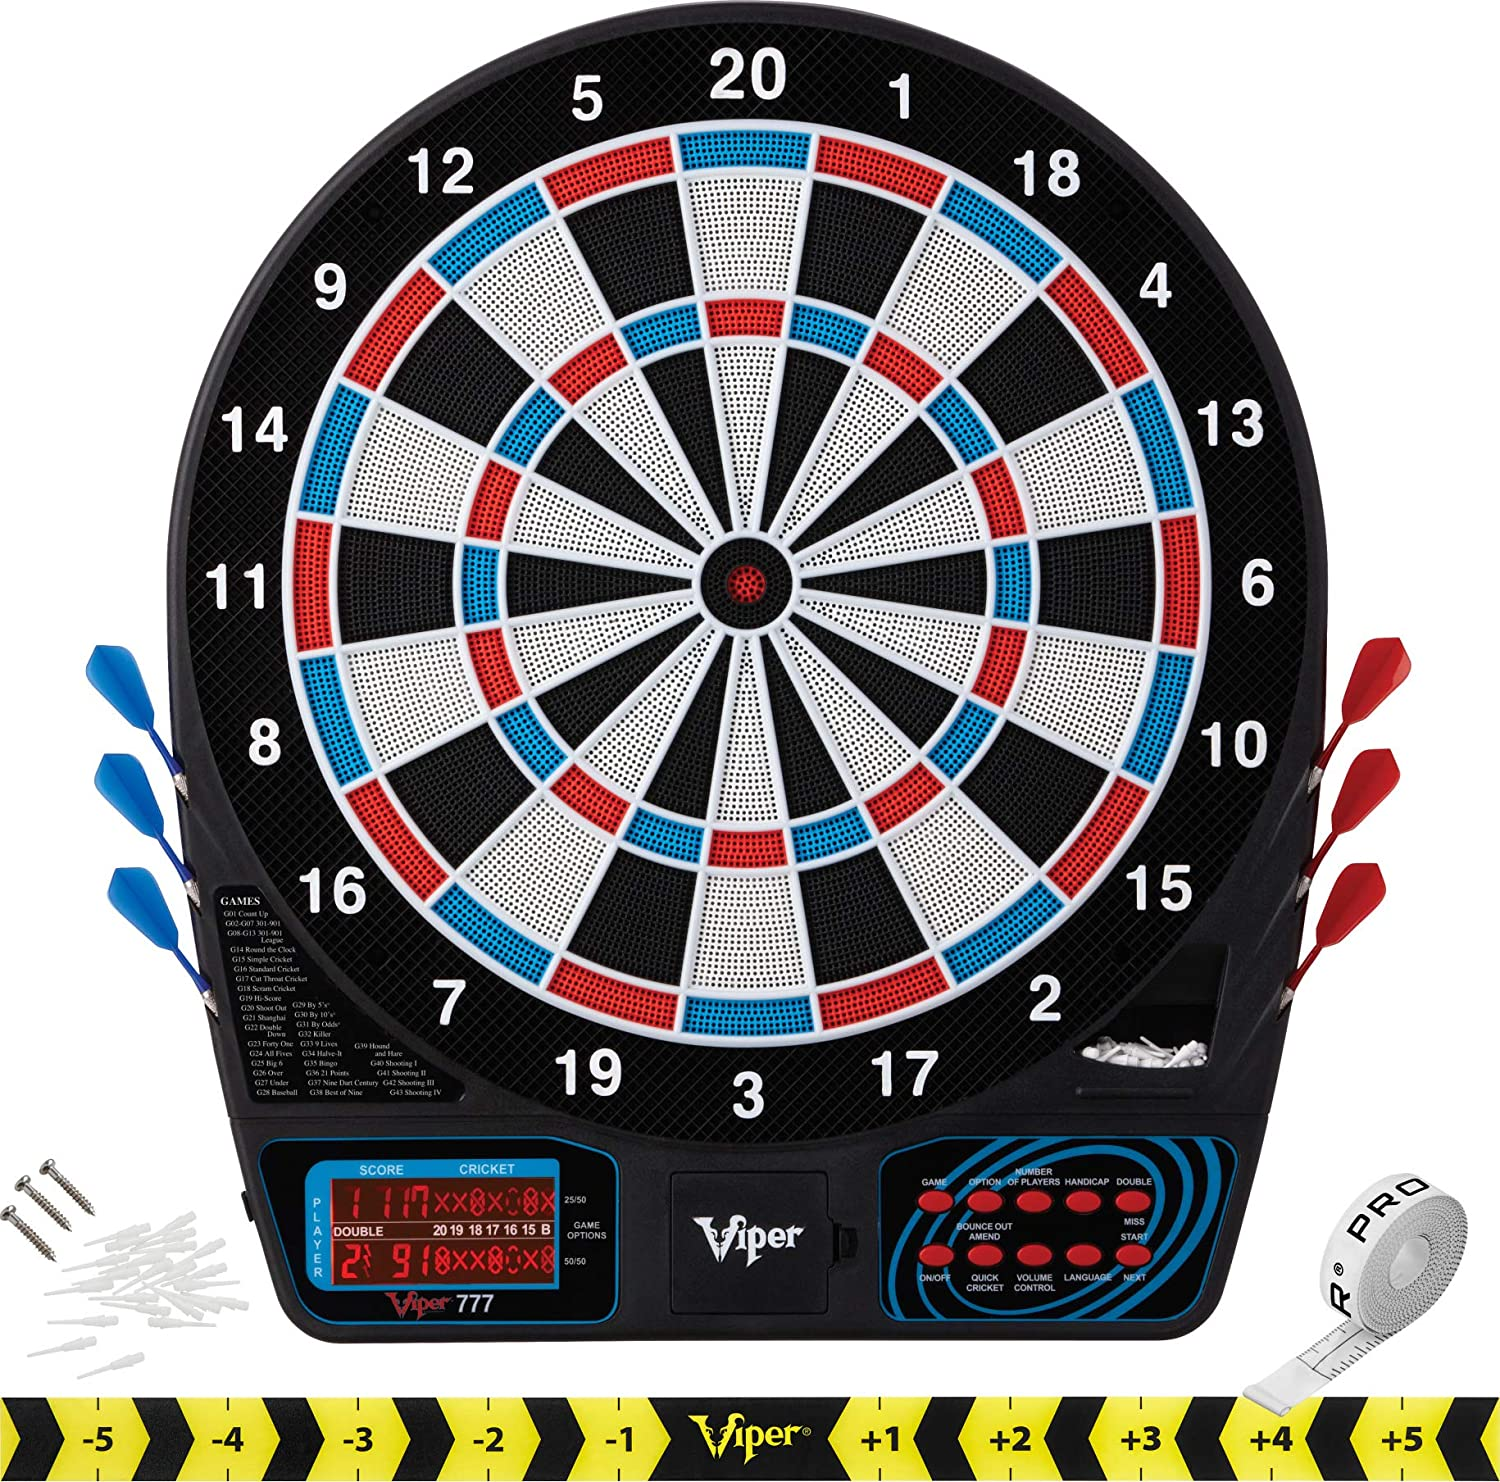 Viper By GLD Products 777 Electronic Dart Board